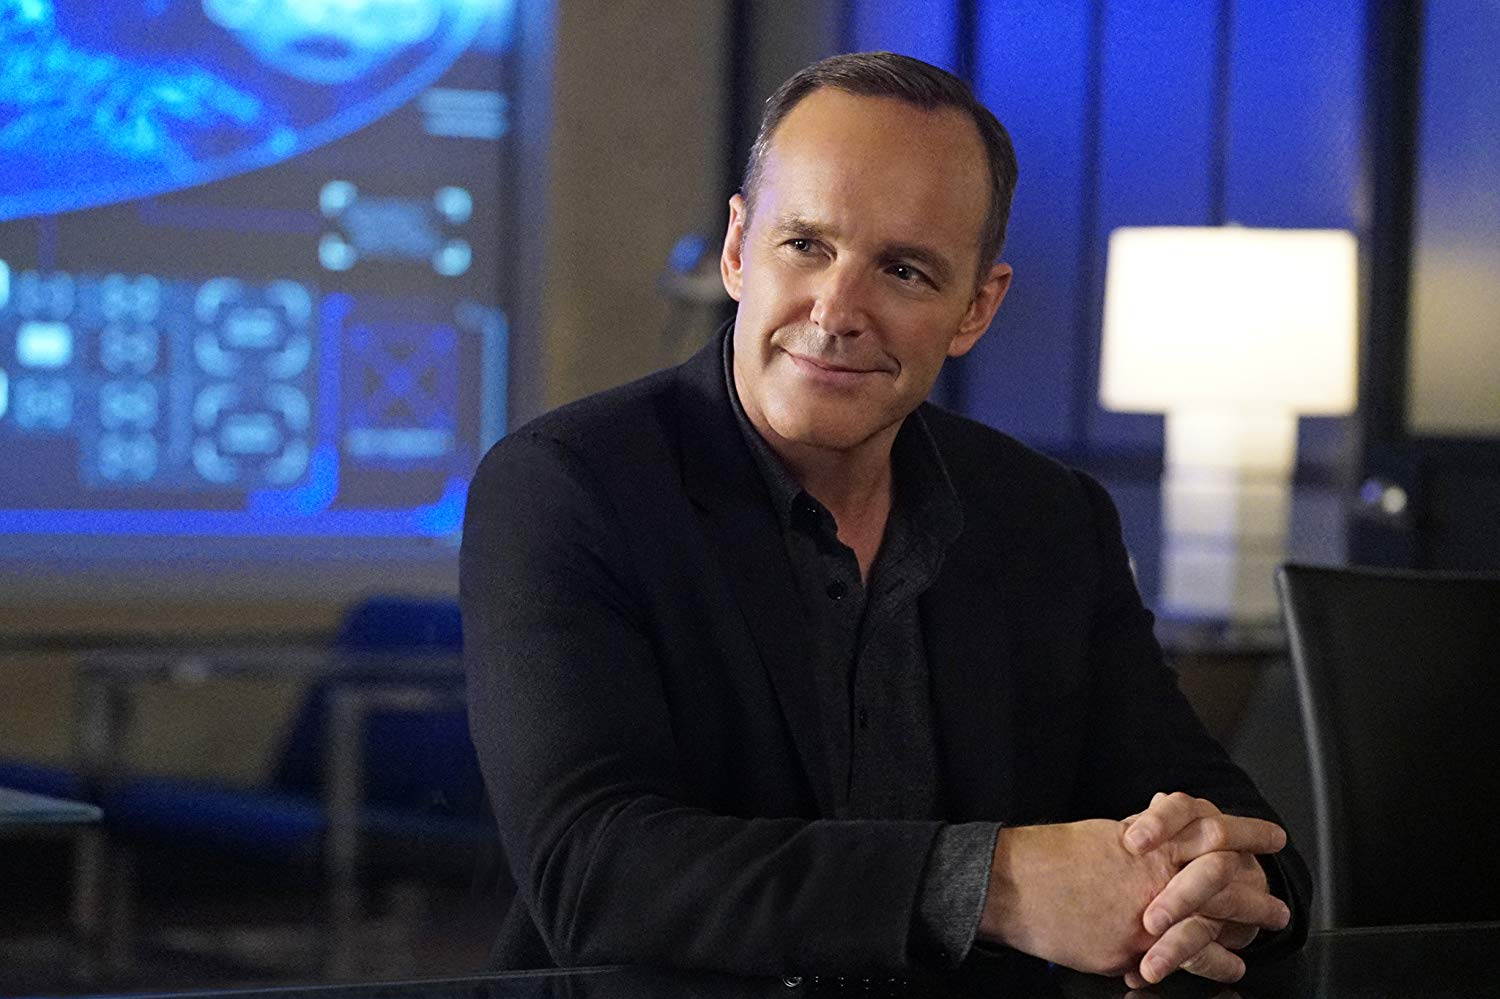 Marvel's Agents of S.H.I.E.L.D. - Season 6